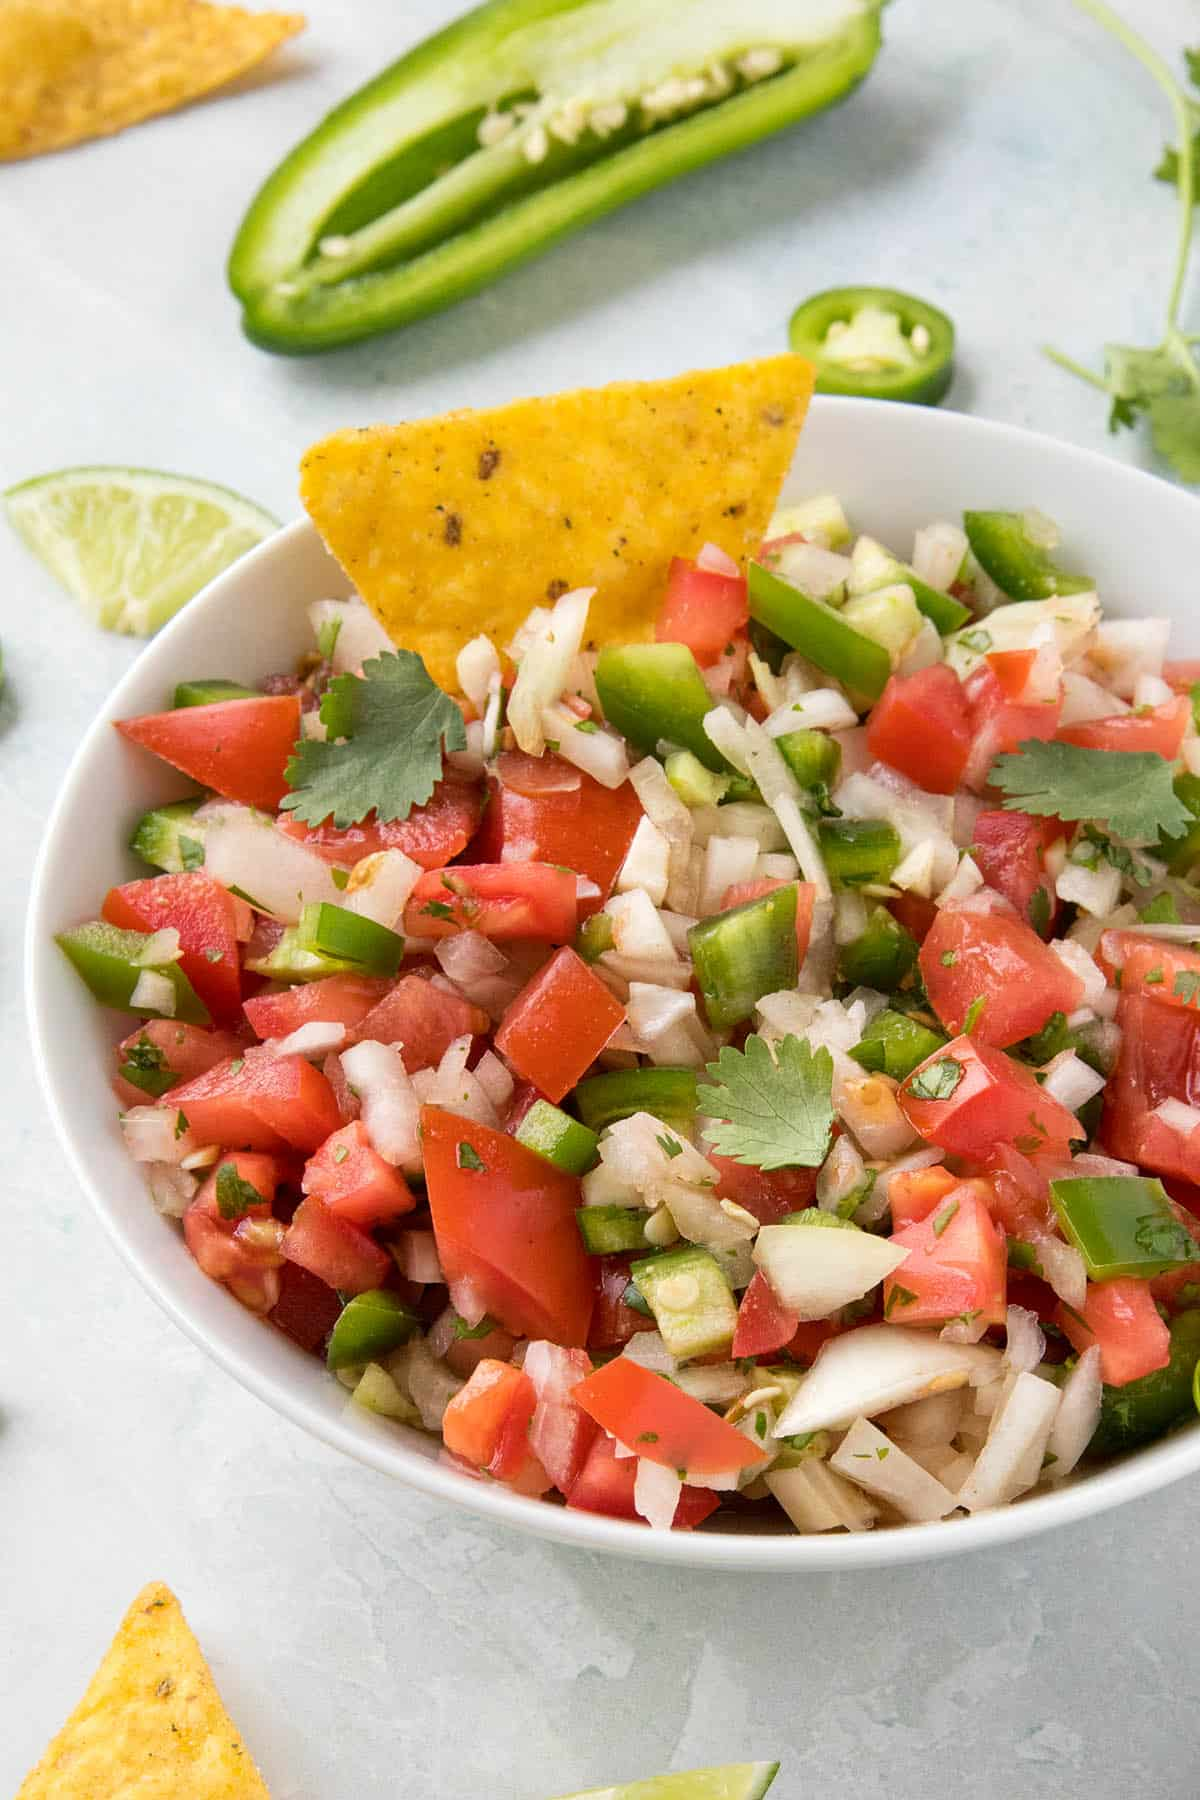 Vibrant, colorful Pico de Gallo with chips